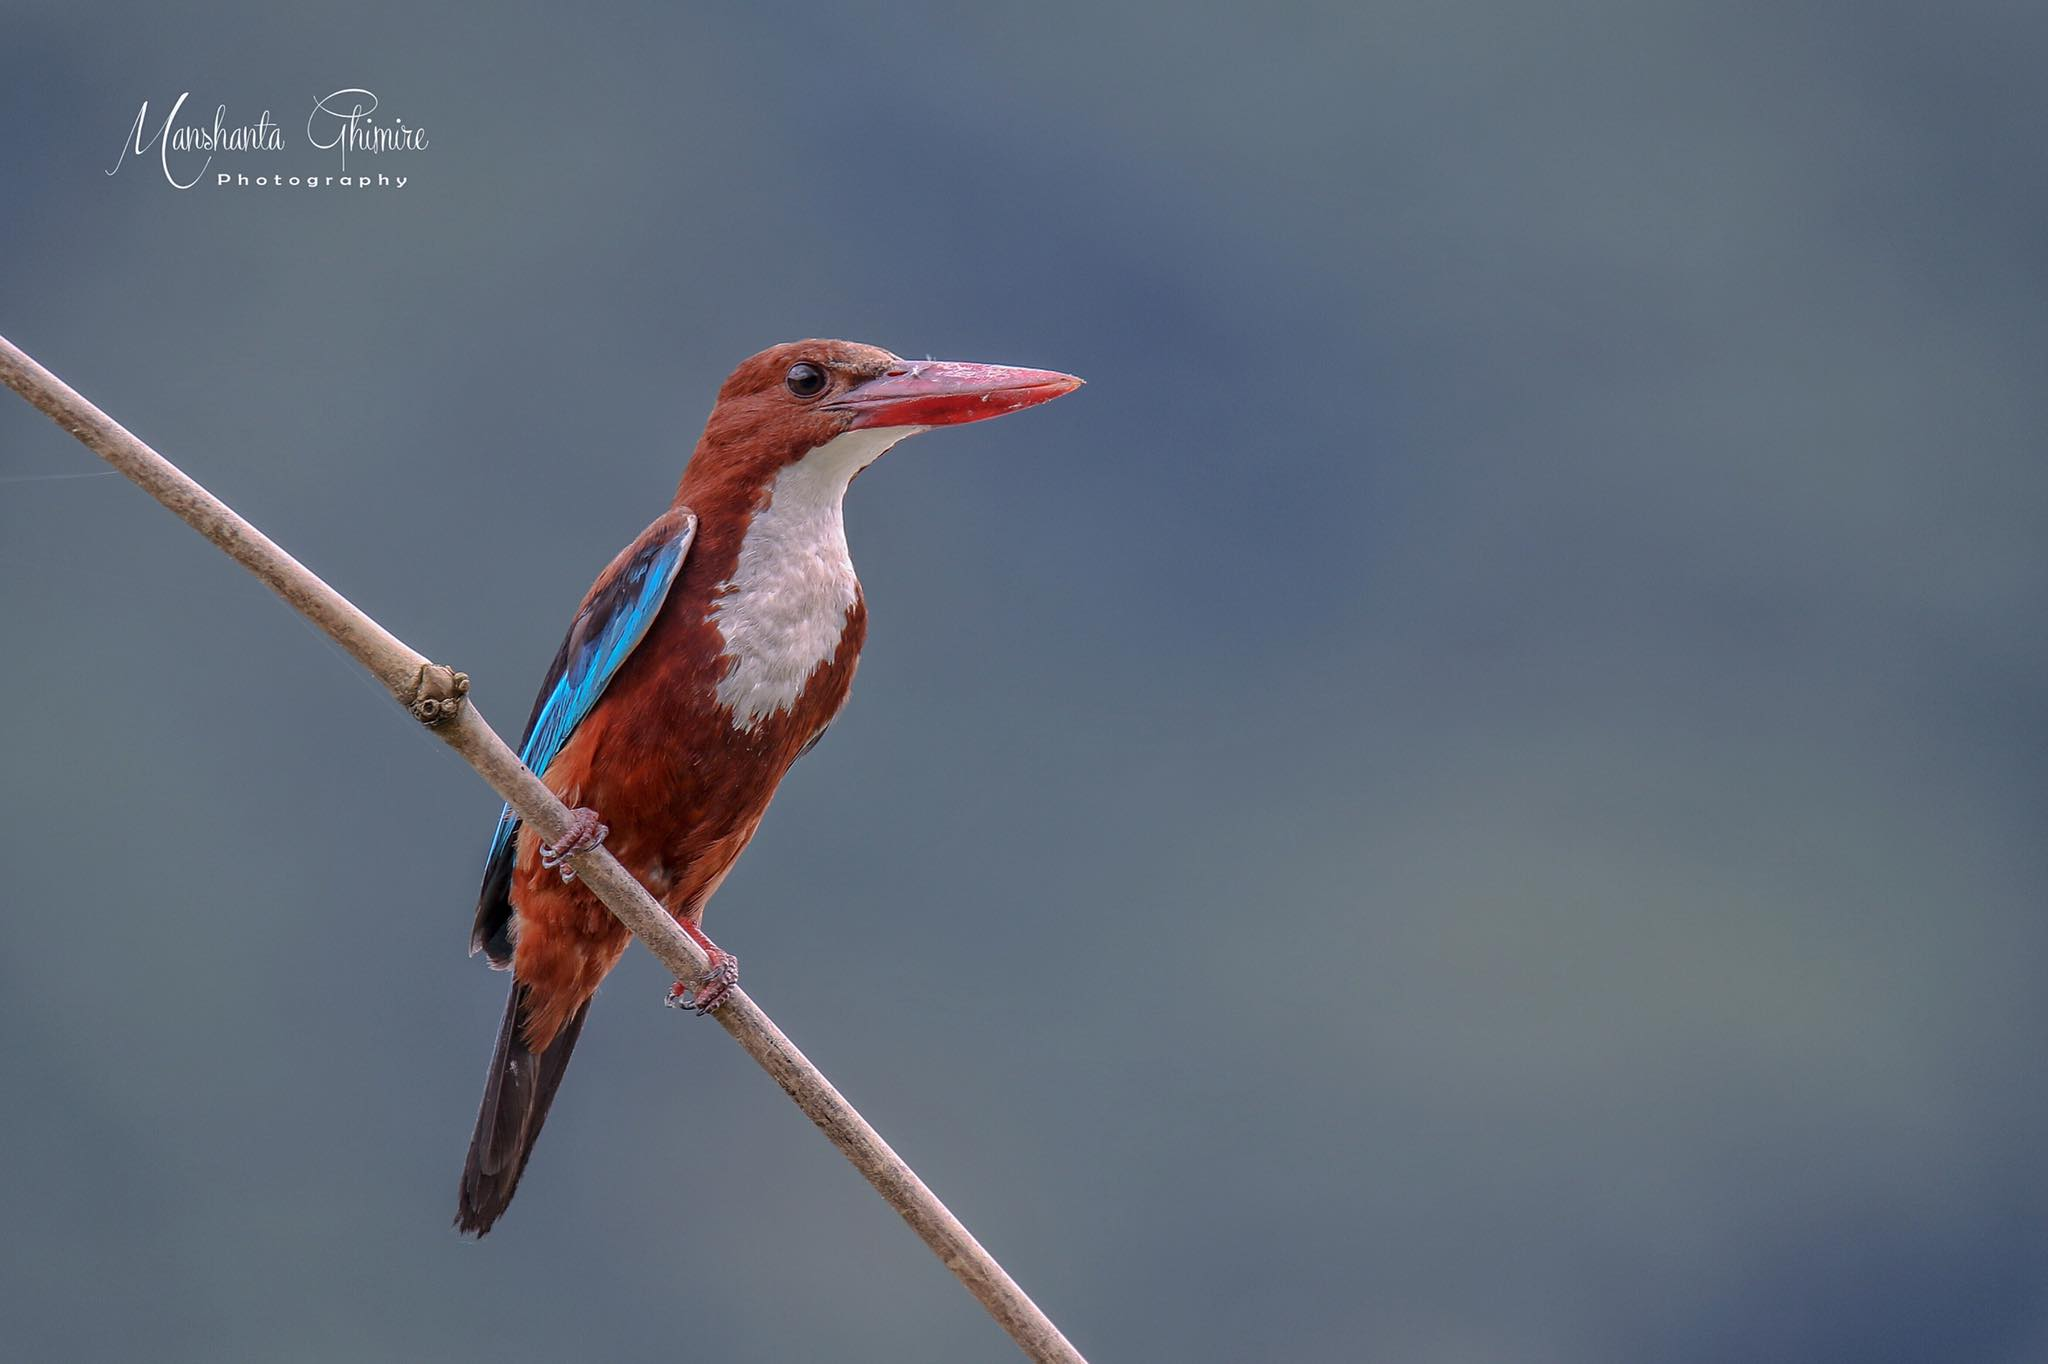 WT king fisher